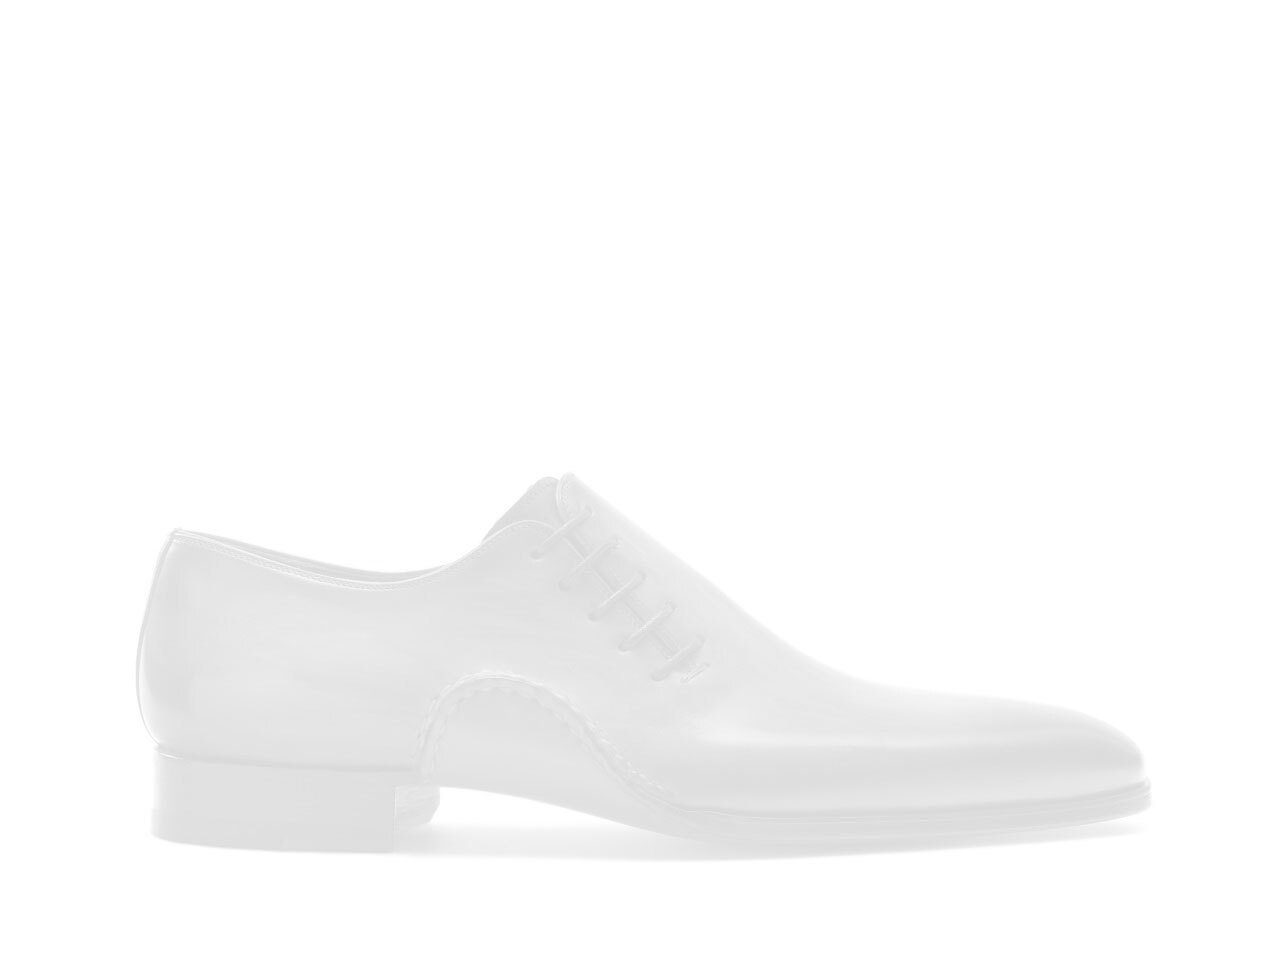 Side view of the Magnanni Bowery Tabaco Men's Oxford Shoes